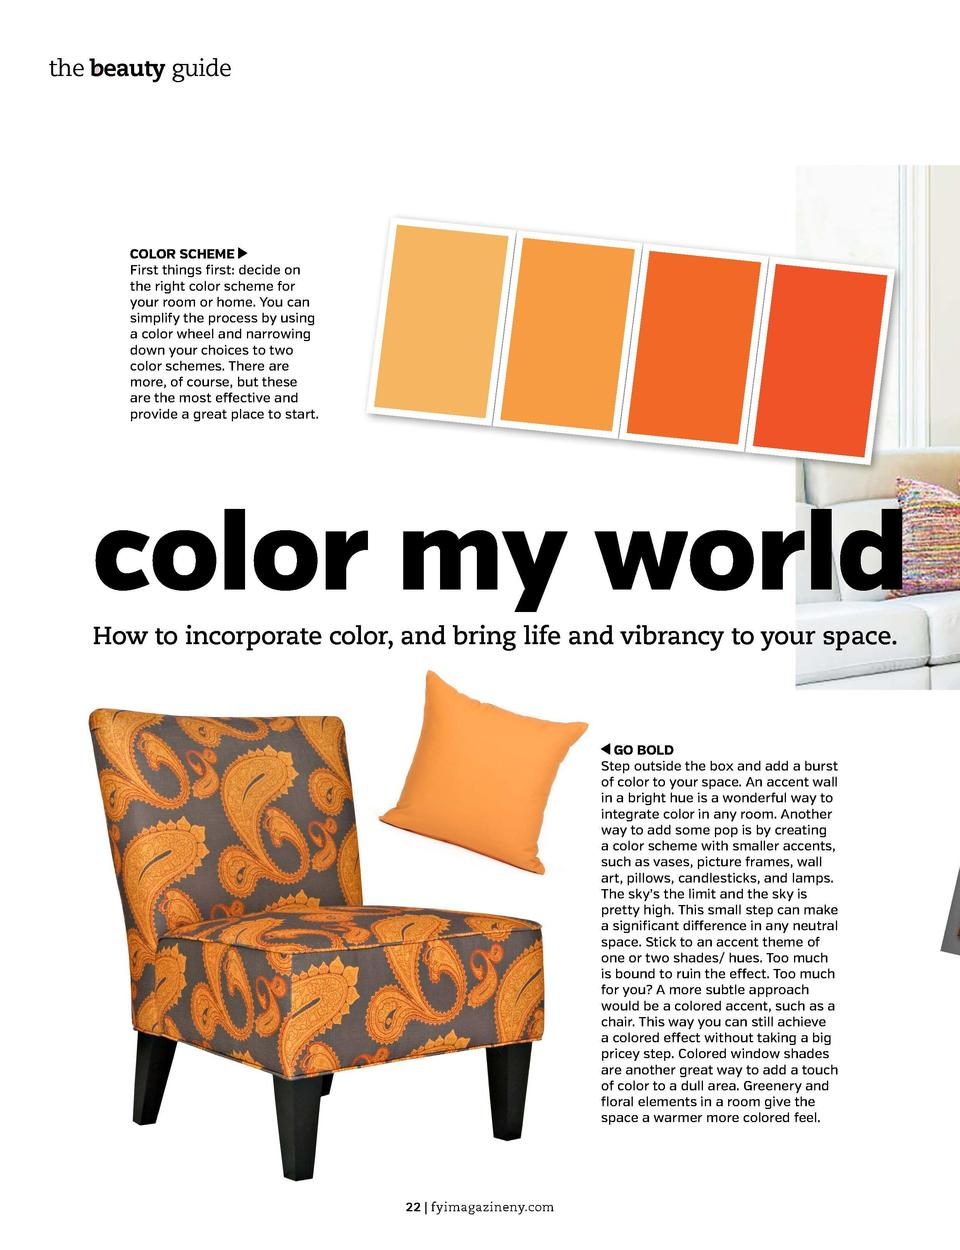 the beauty guide  HOME  COLOR SCHEME First things first  decide on the right color scheme for your room or home. You can s...